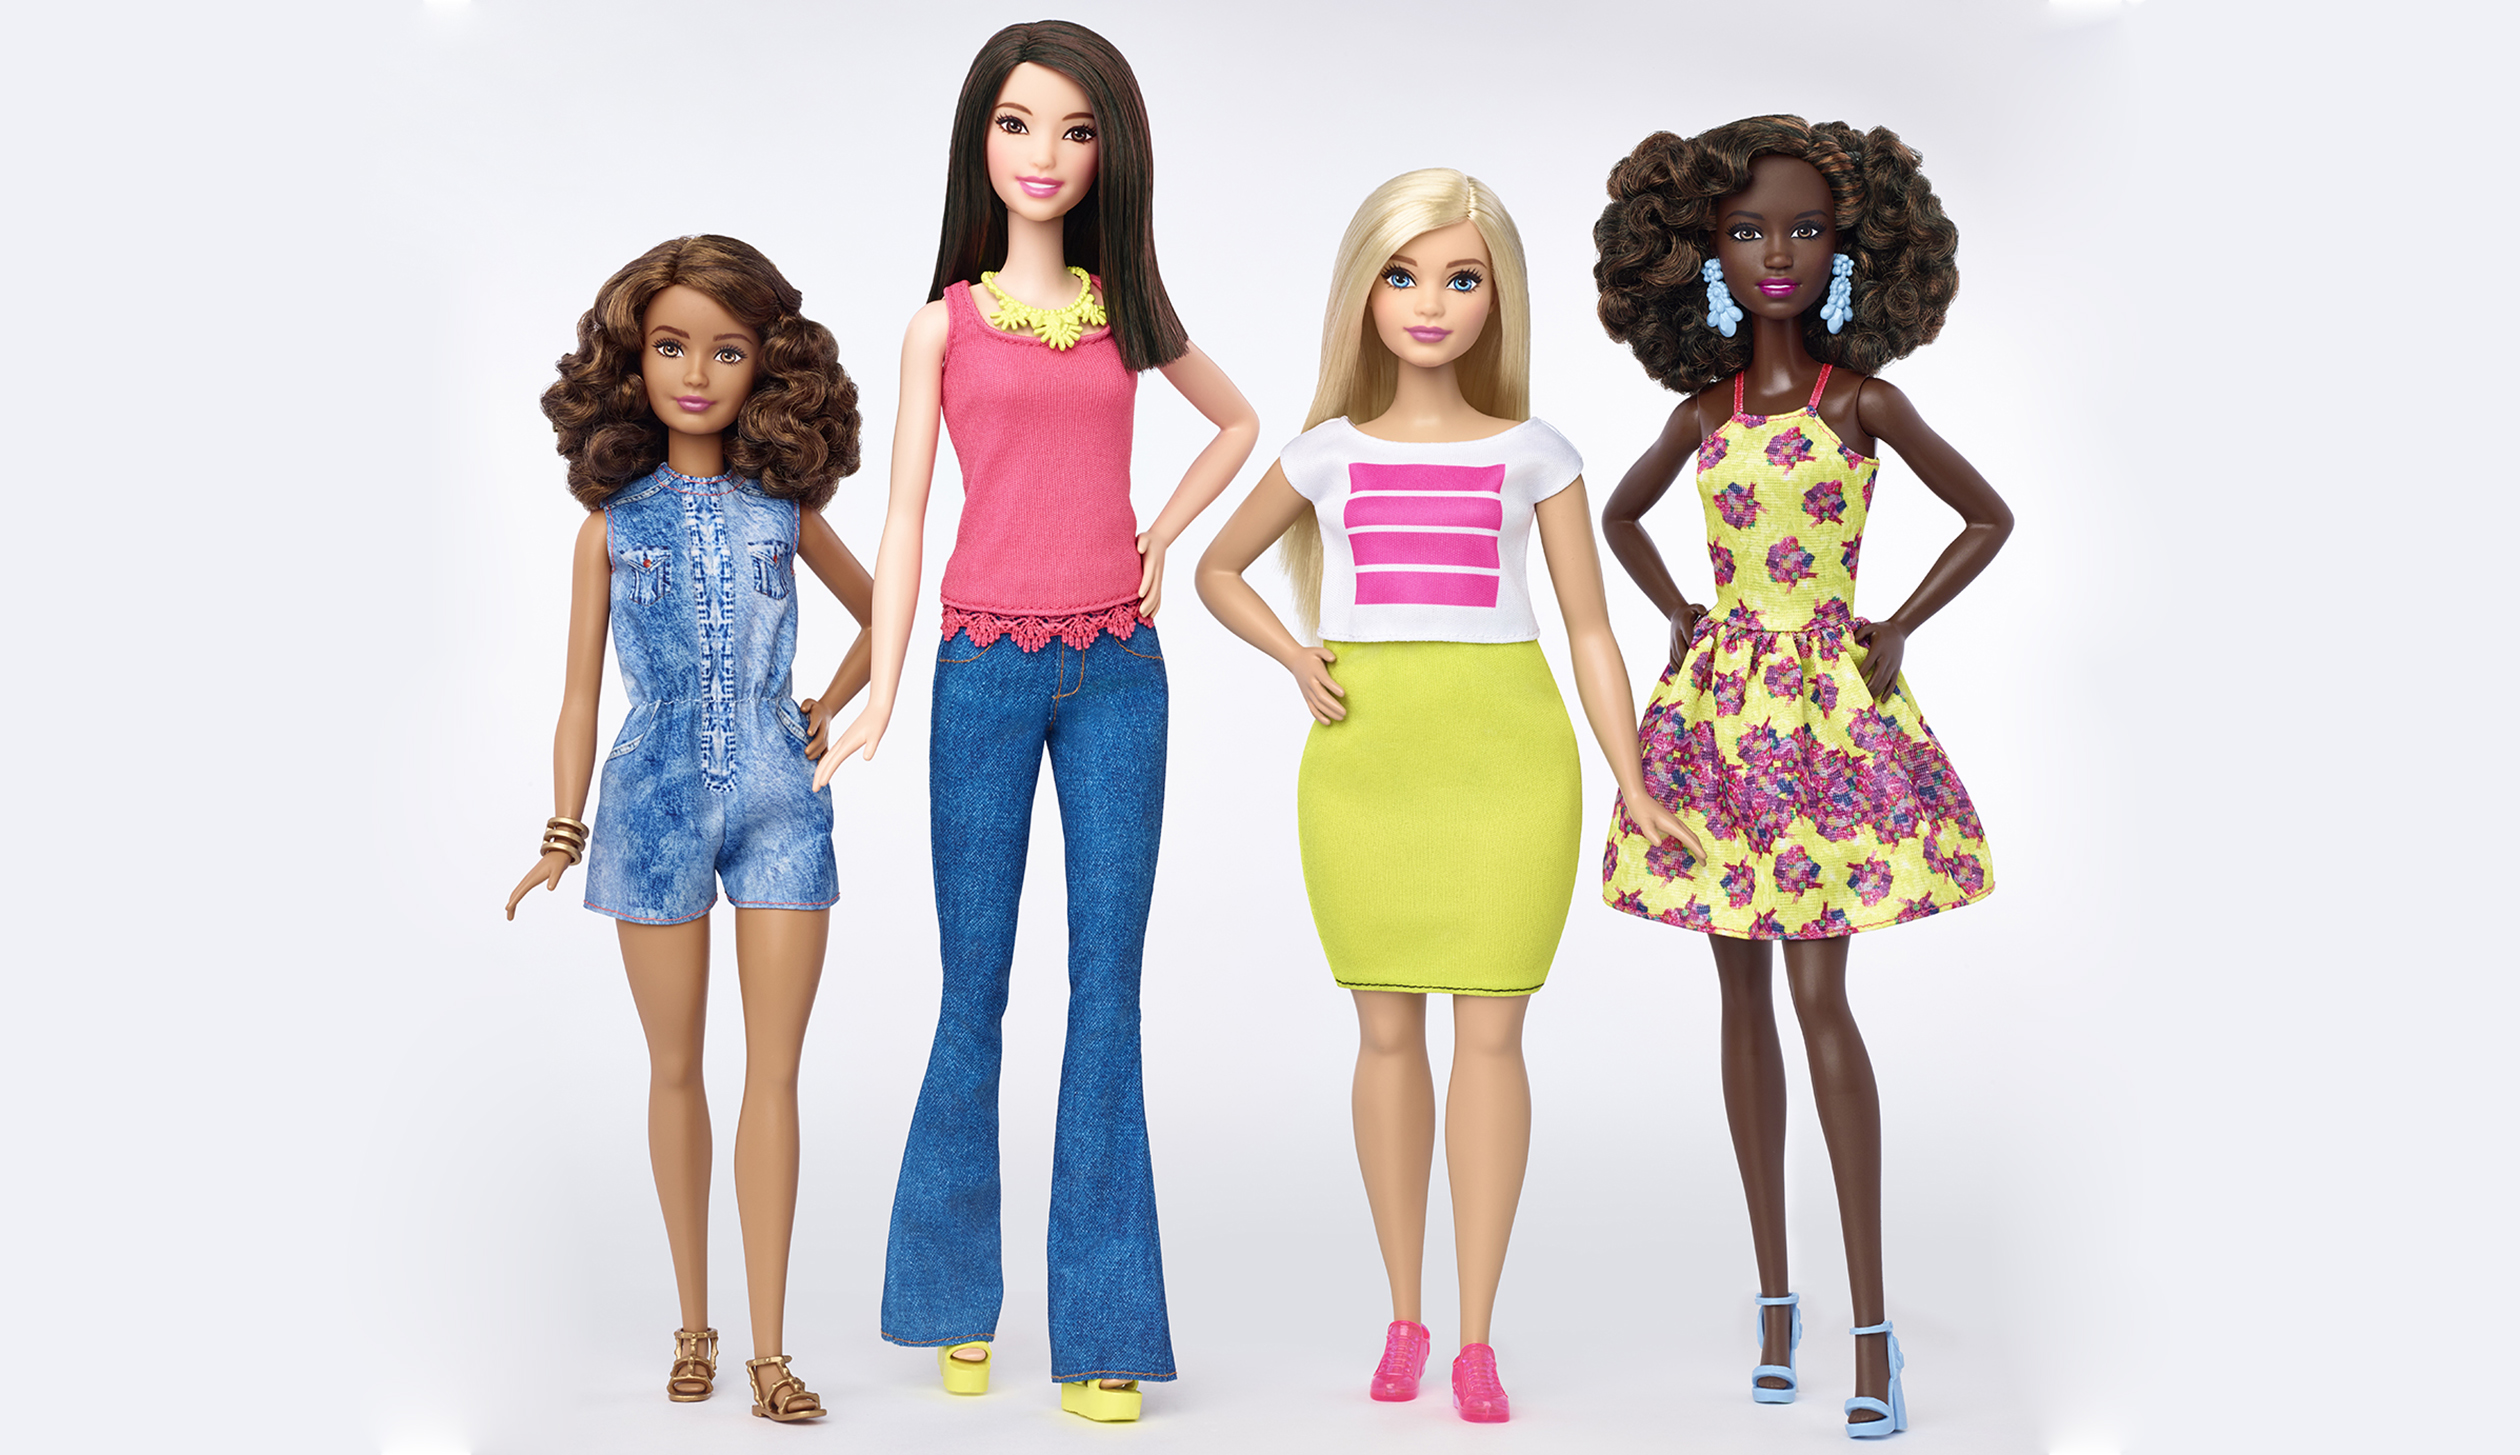 A new Barbie line for 2016 features four body types, seven skin tones, 22 eye colors, 24 hairstyles and of course, new clothes.